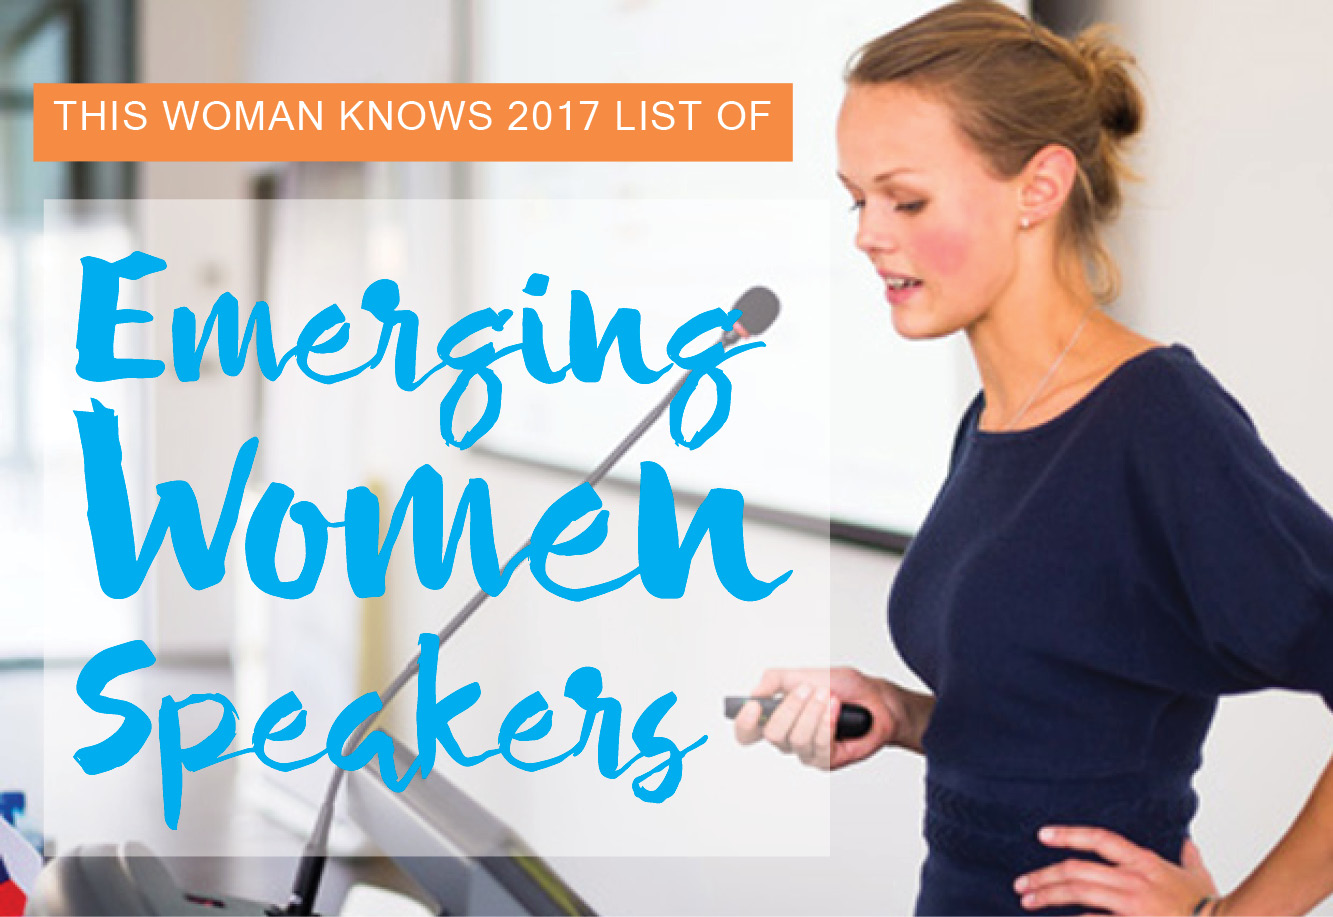 She's Ready! TWK 2017 List of Emerging Women Speakers